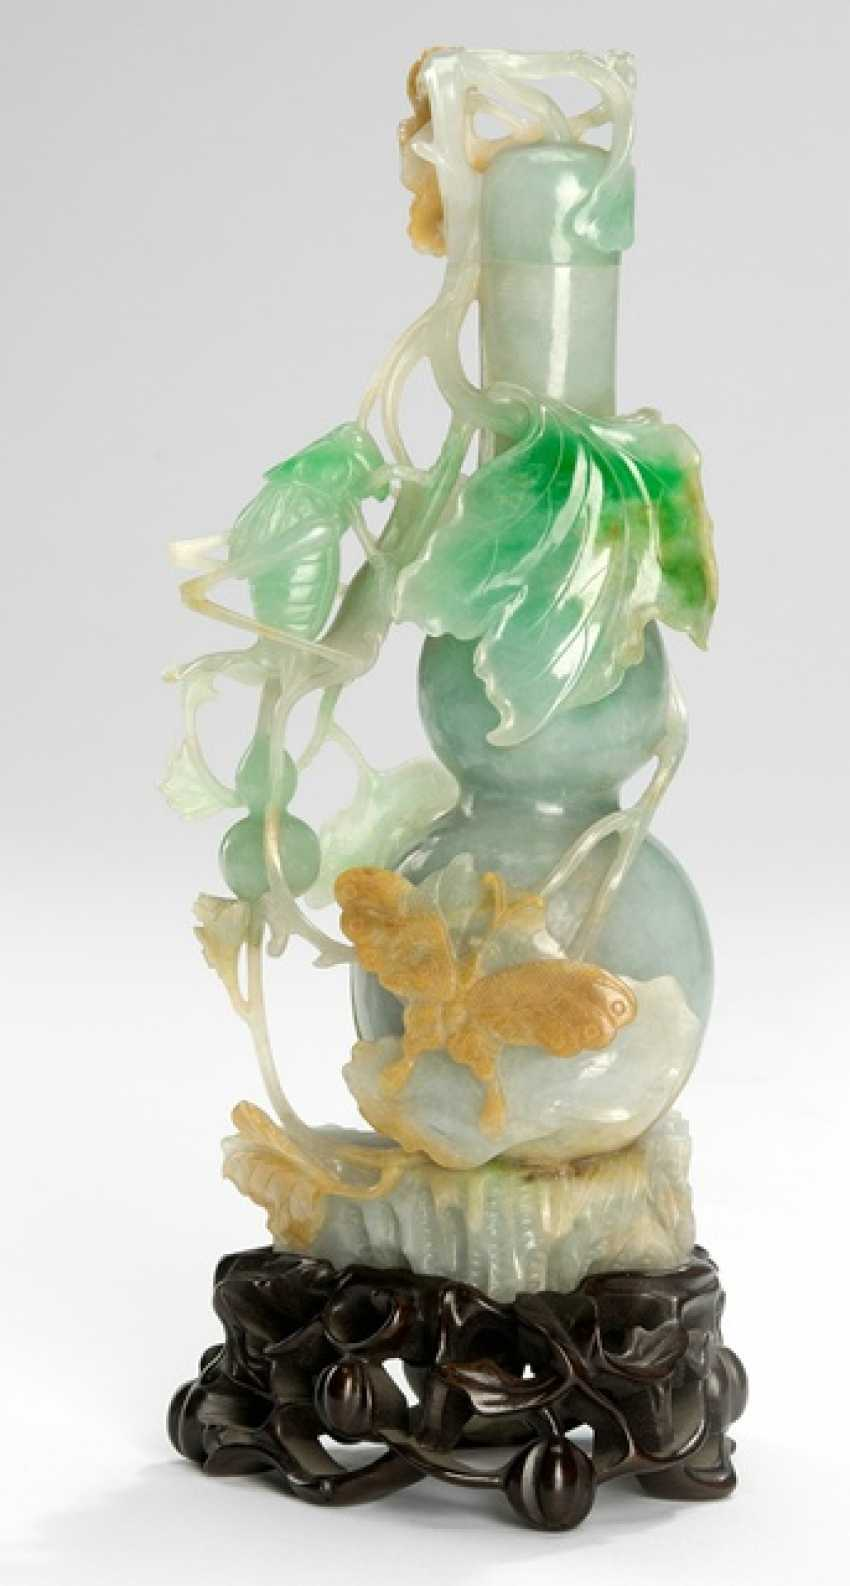 Fine gourd vase with grasshoppers, butterfly and Foliage from jadeite - photo 1